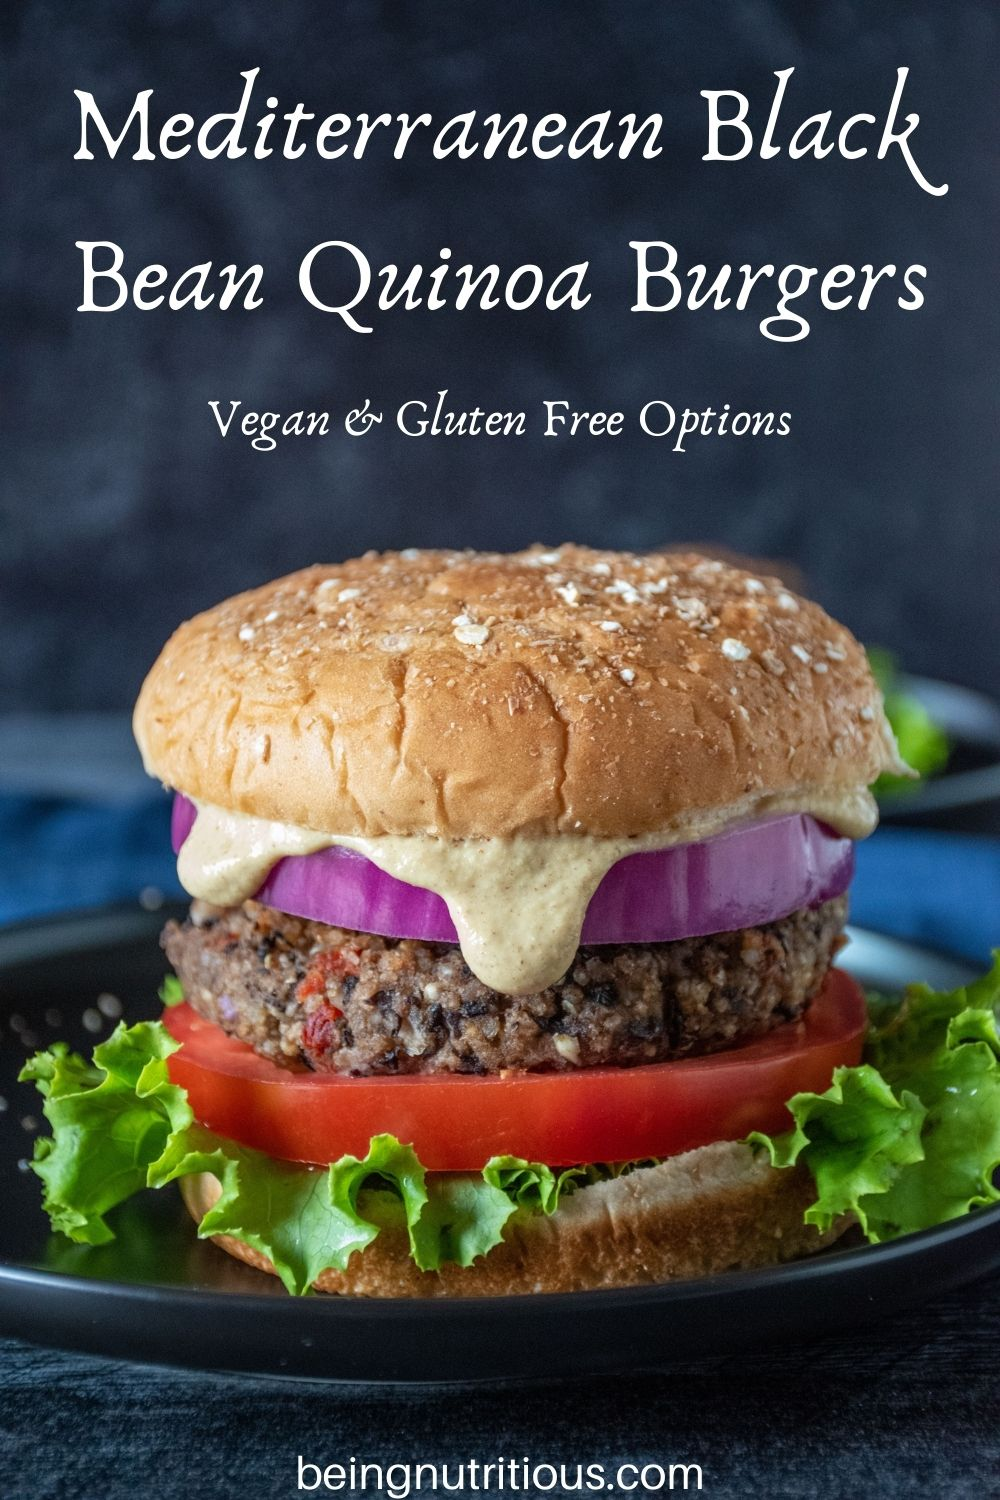 Bean burger on a bun, with onions, tomatoes, lettuce and sauce dripping out. Text overlay: Mediterranean Black Bean Quinoa Burgers; Vegan & Gluten Free Options.